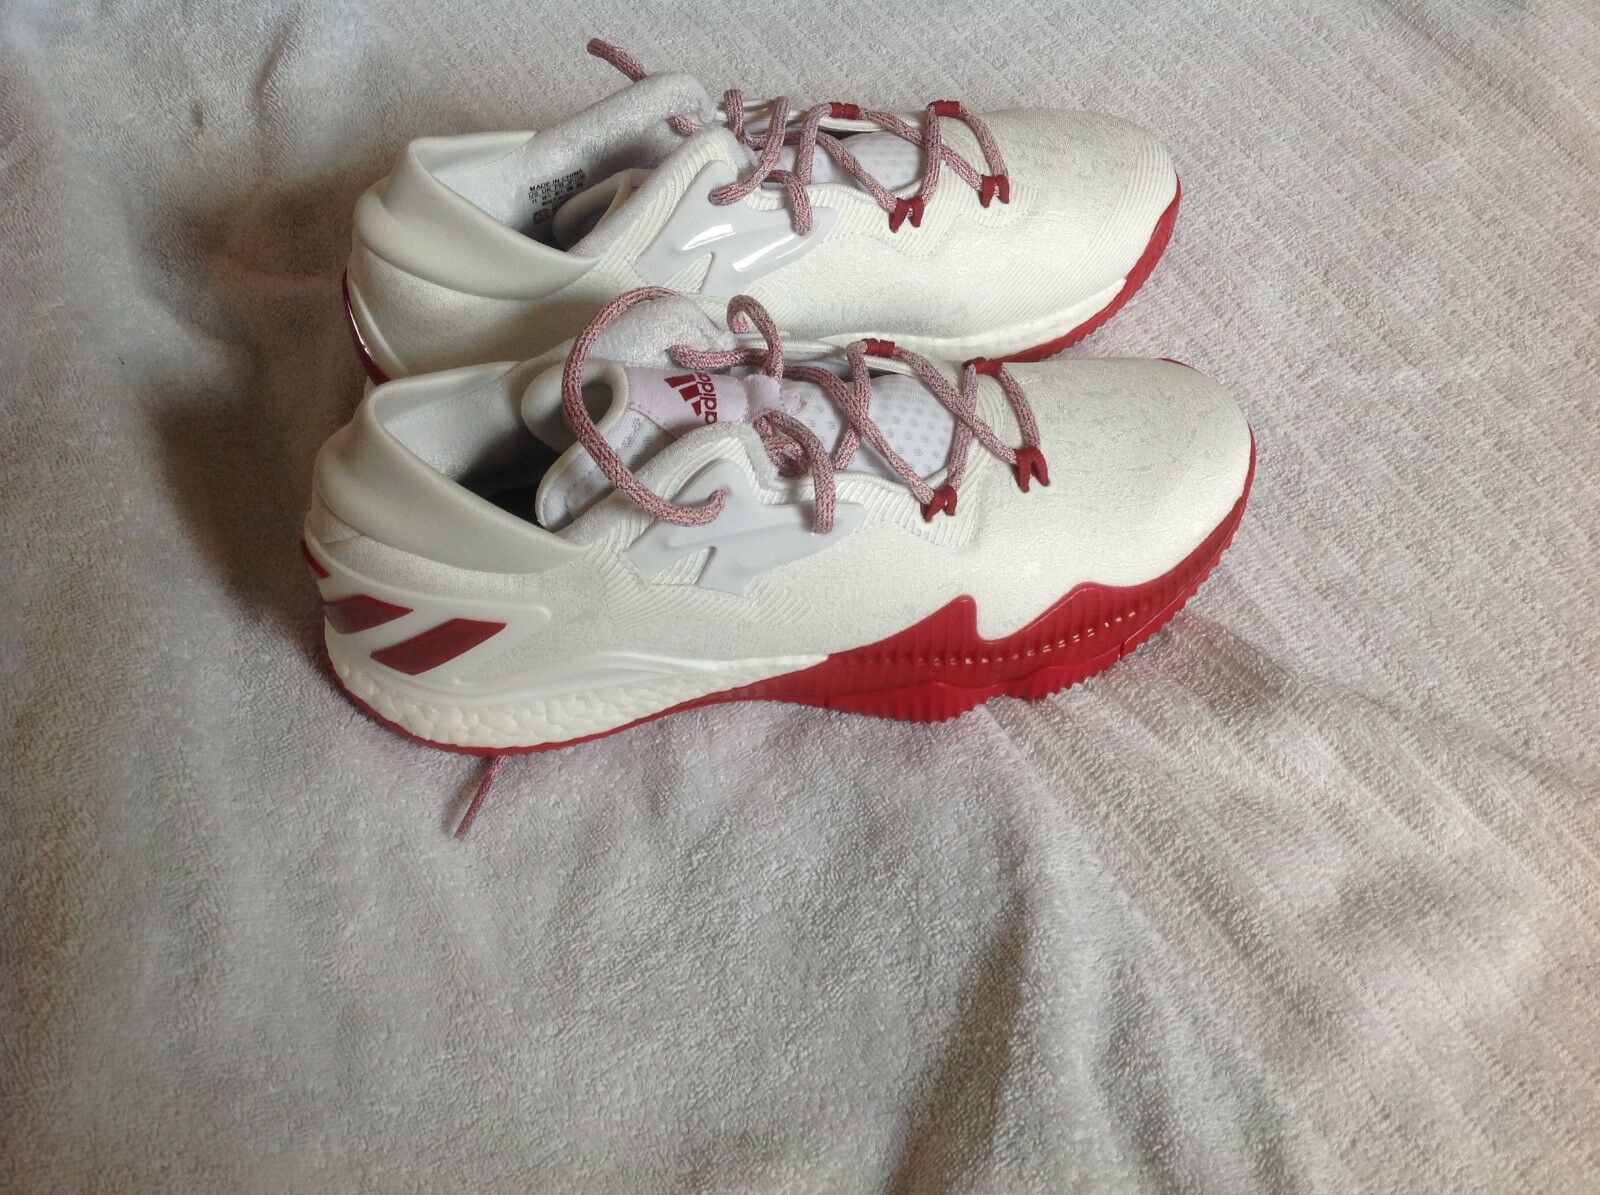 Adidas Crazy light boost men's 11 shoes James Harden MVP signature white red